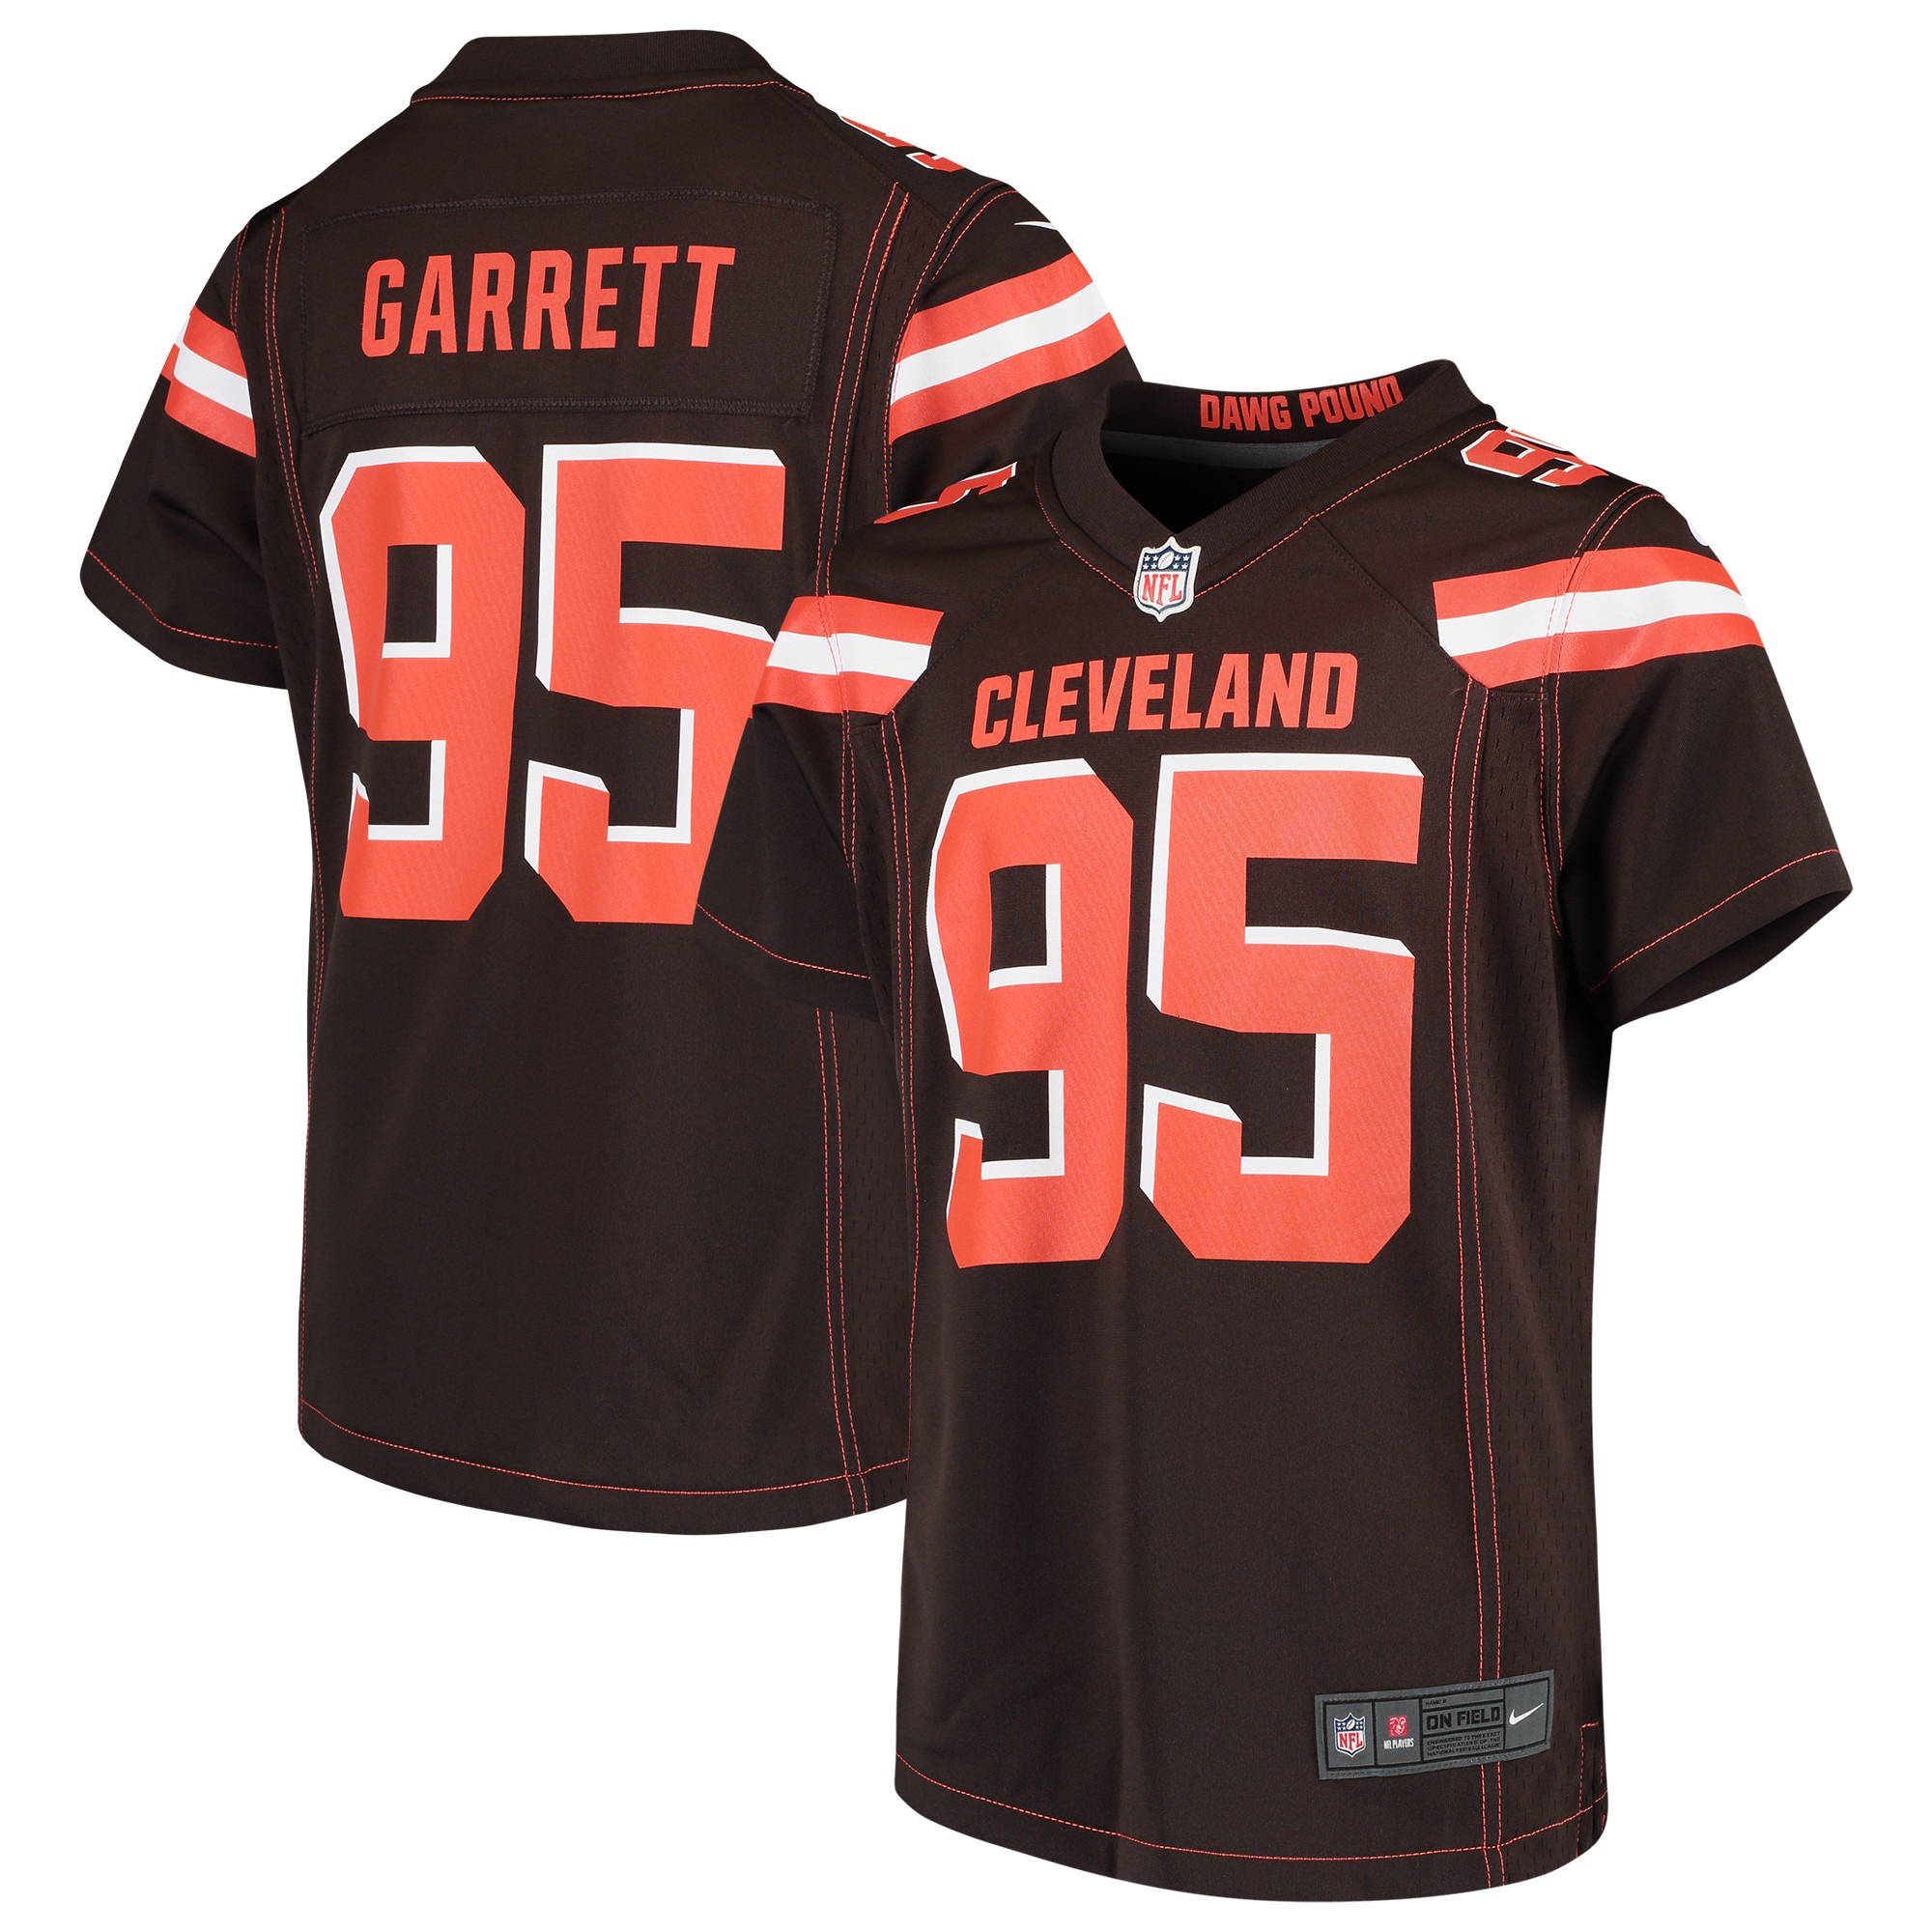 Myles Garrett Cleveland Browns Nike Girls Youth Game Jersey - Brown